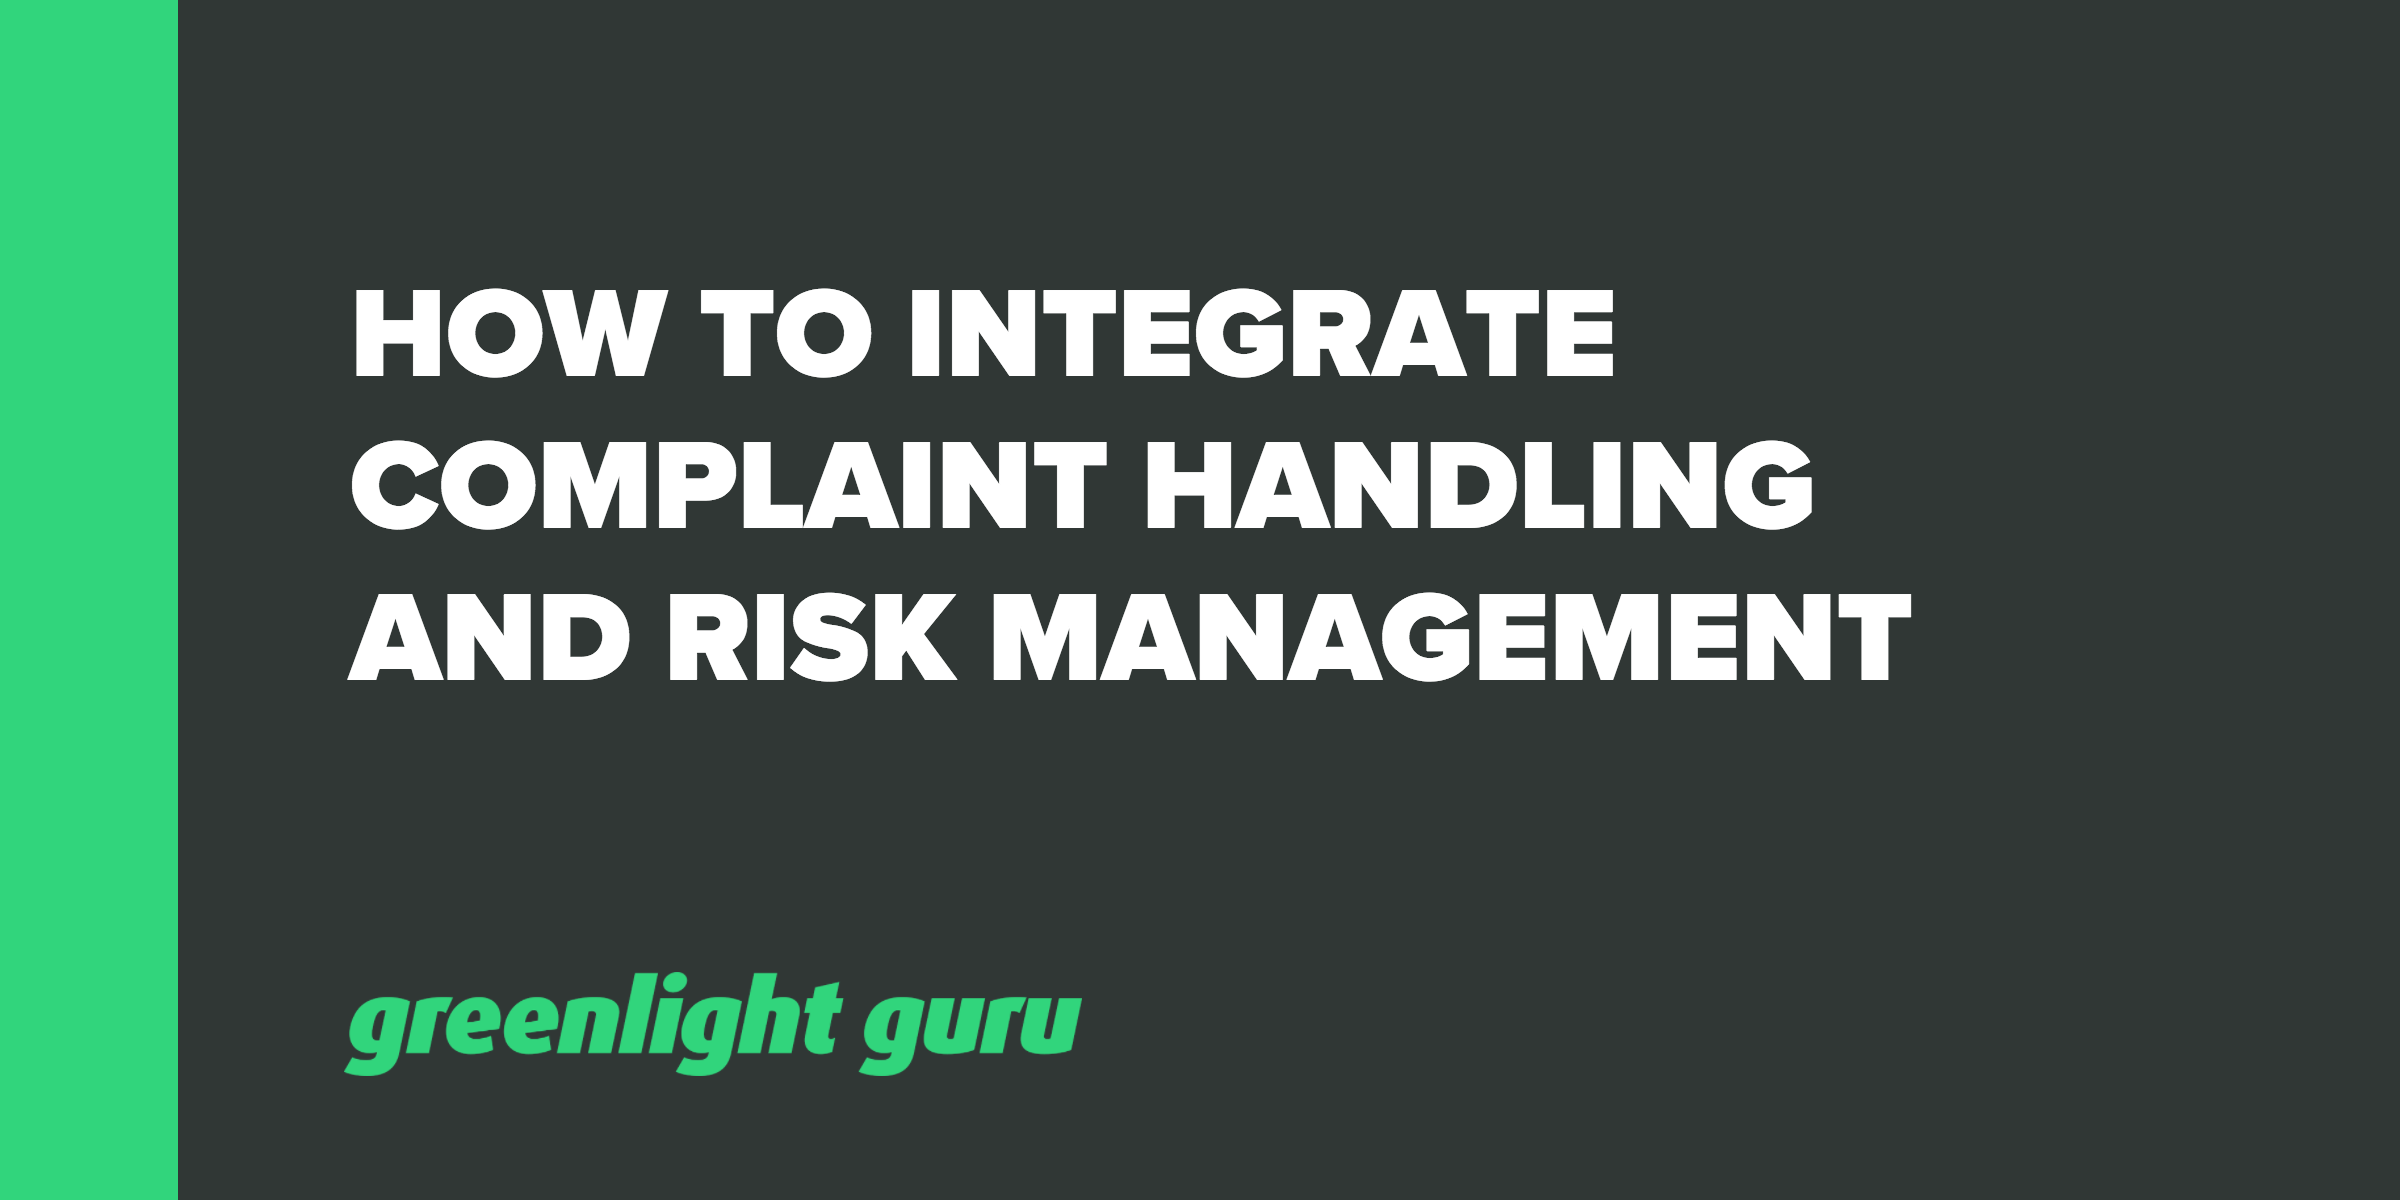 integrating_complaint_handling_risk_management.png